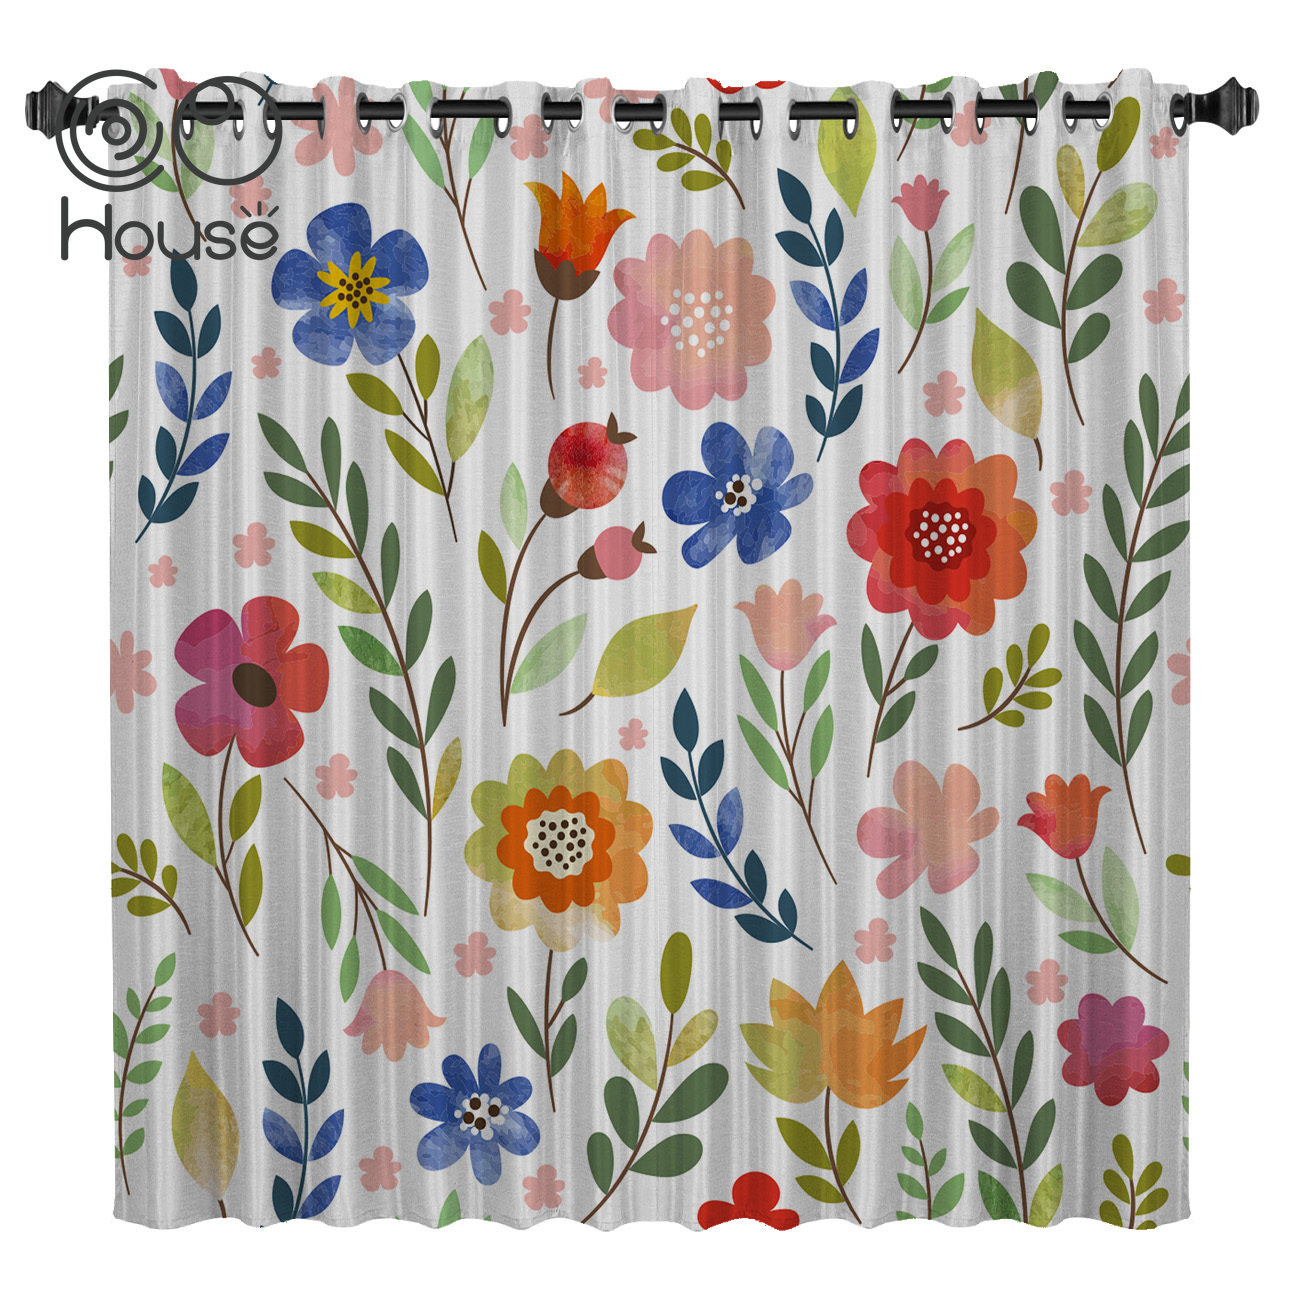 COCOHouse Illustration Cartoon Flower Floral Spring Window Curtains Dark Bathroom Curtains Kitchen Bedroom Kids Window Treatment